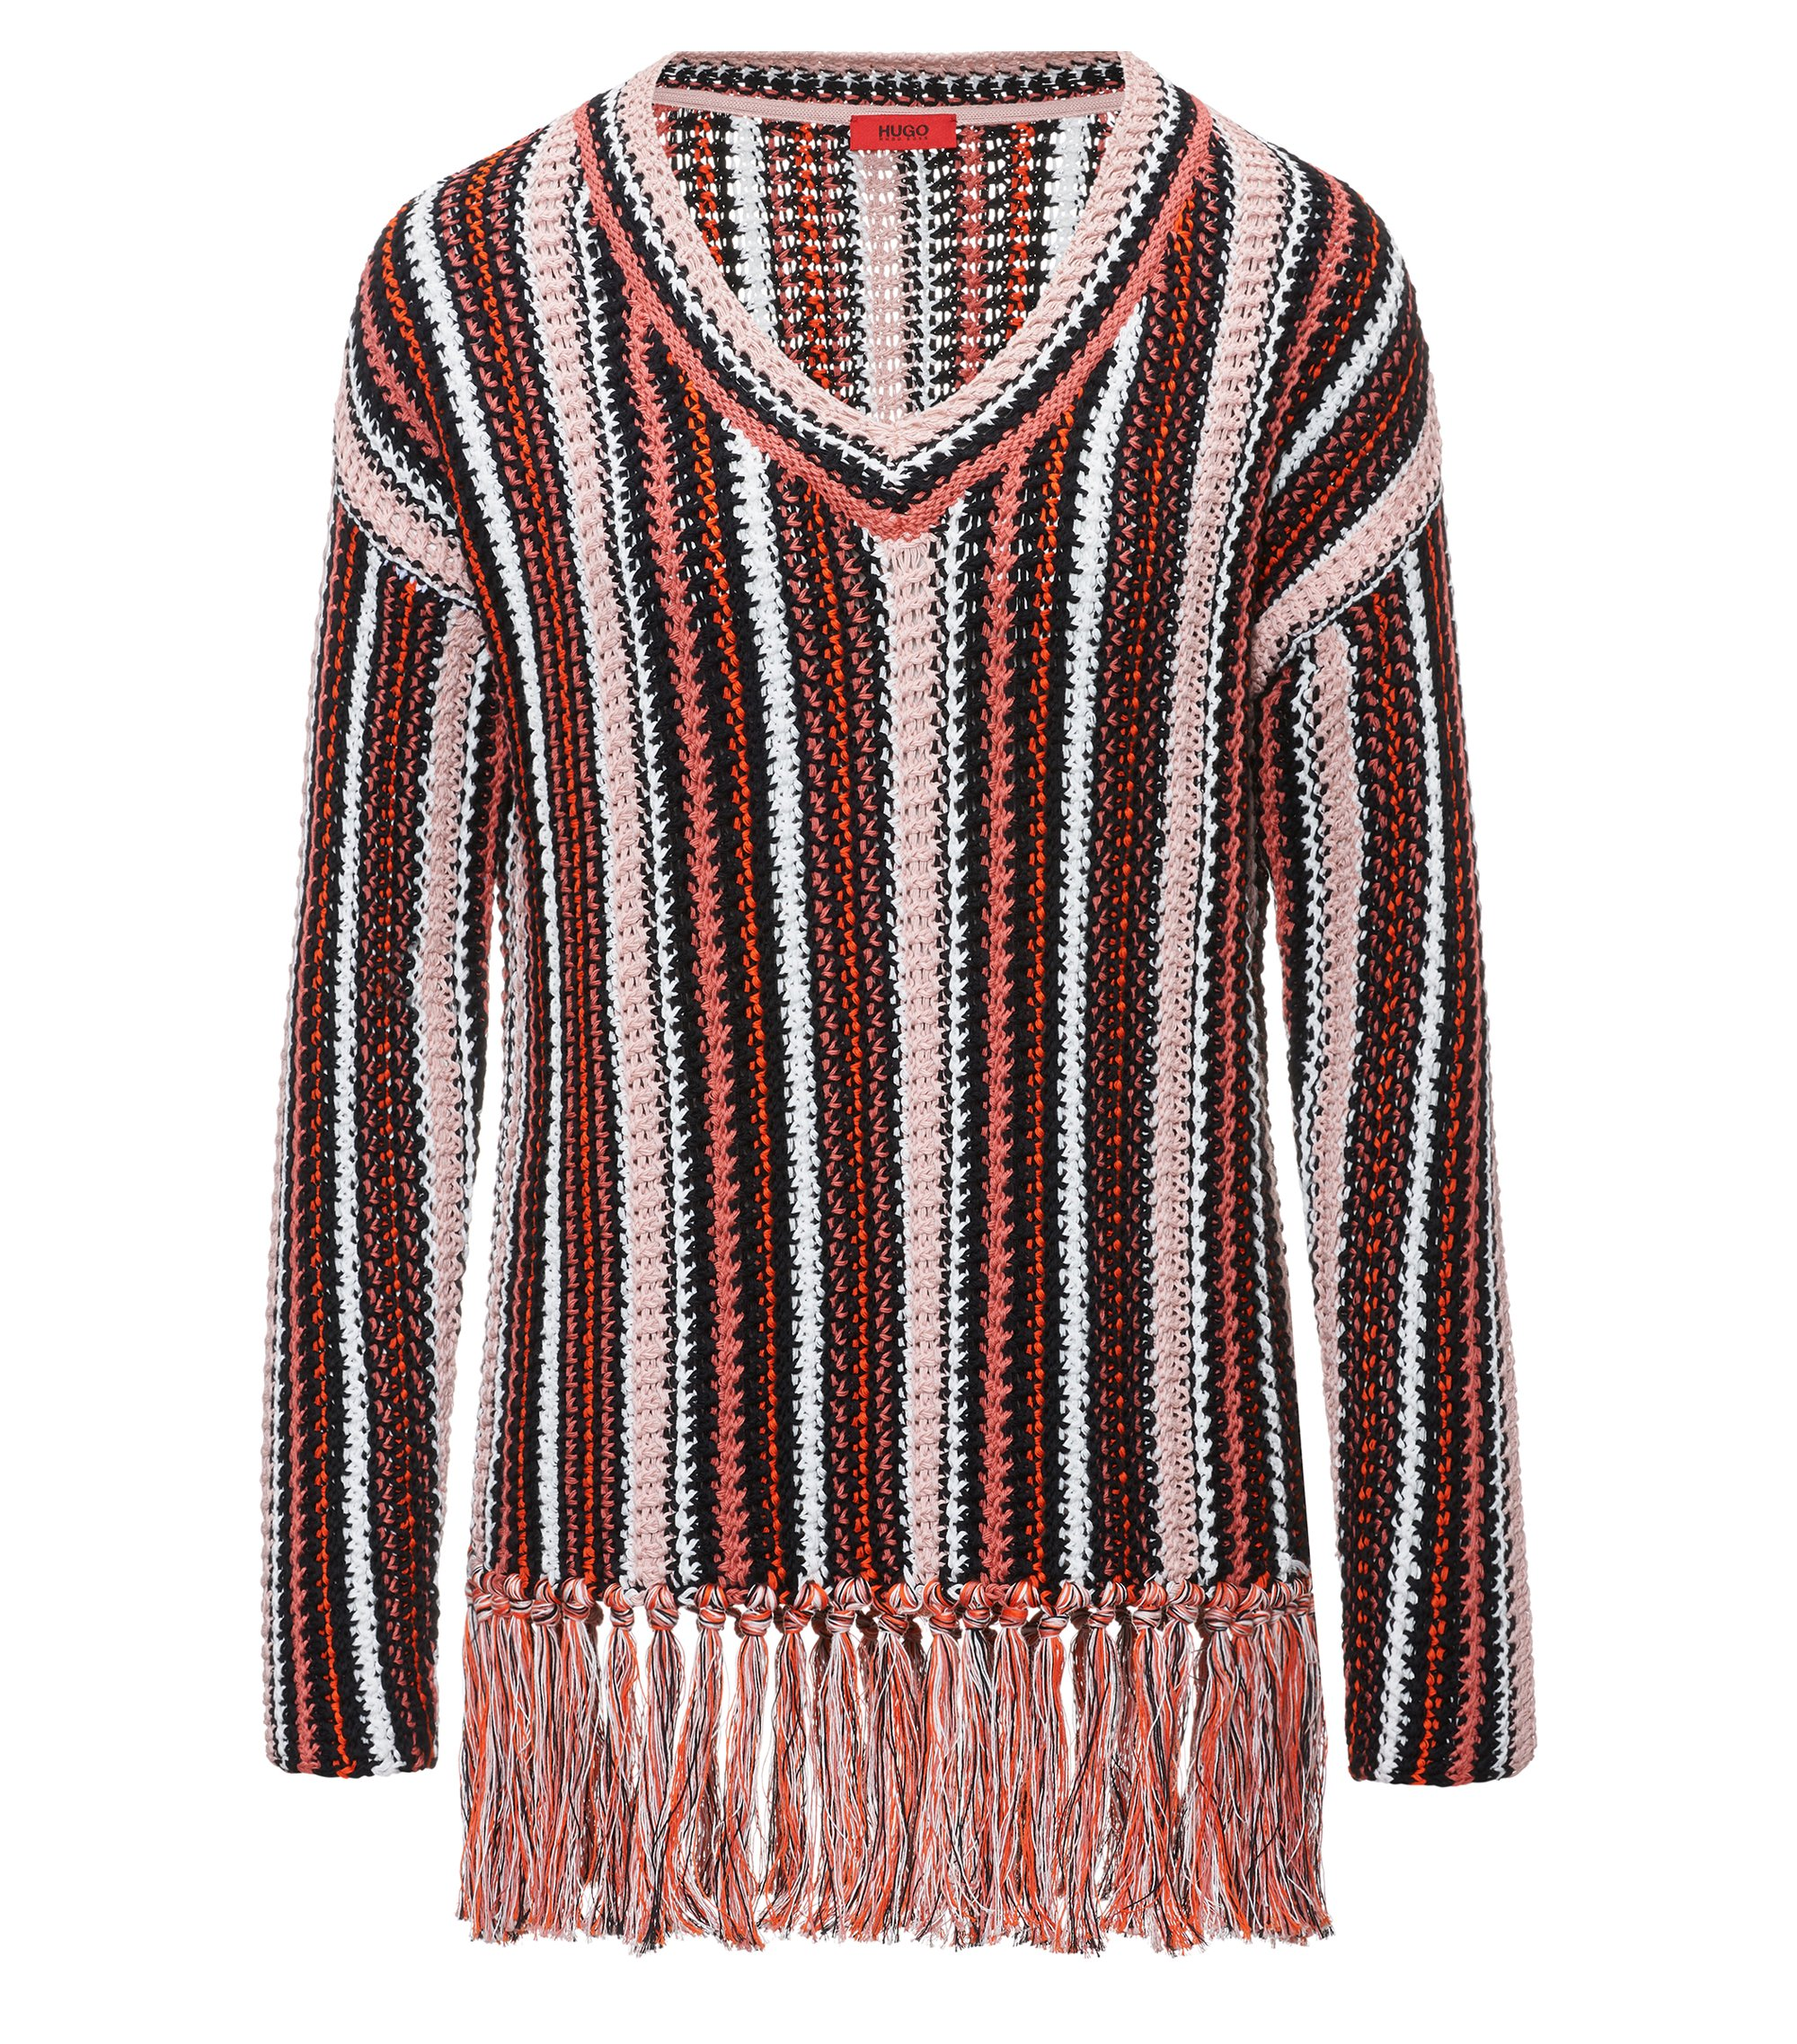 Oversized striped cotton sweater with handcrafted fringing, Patterned